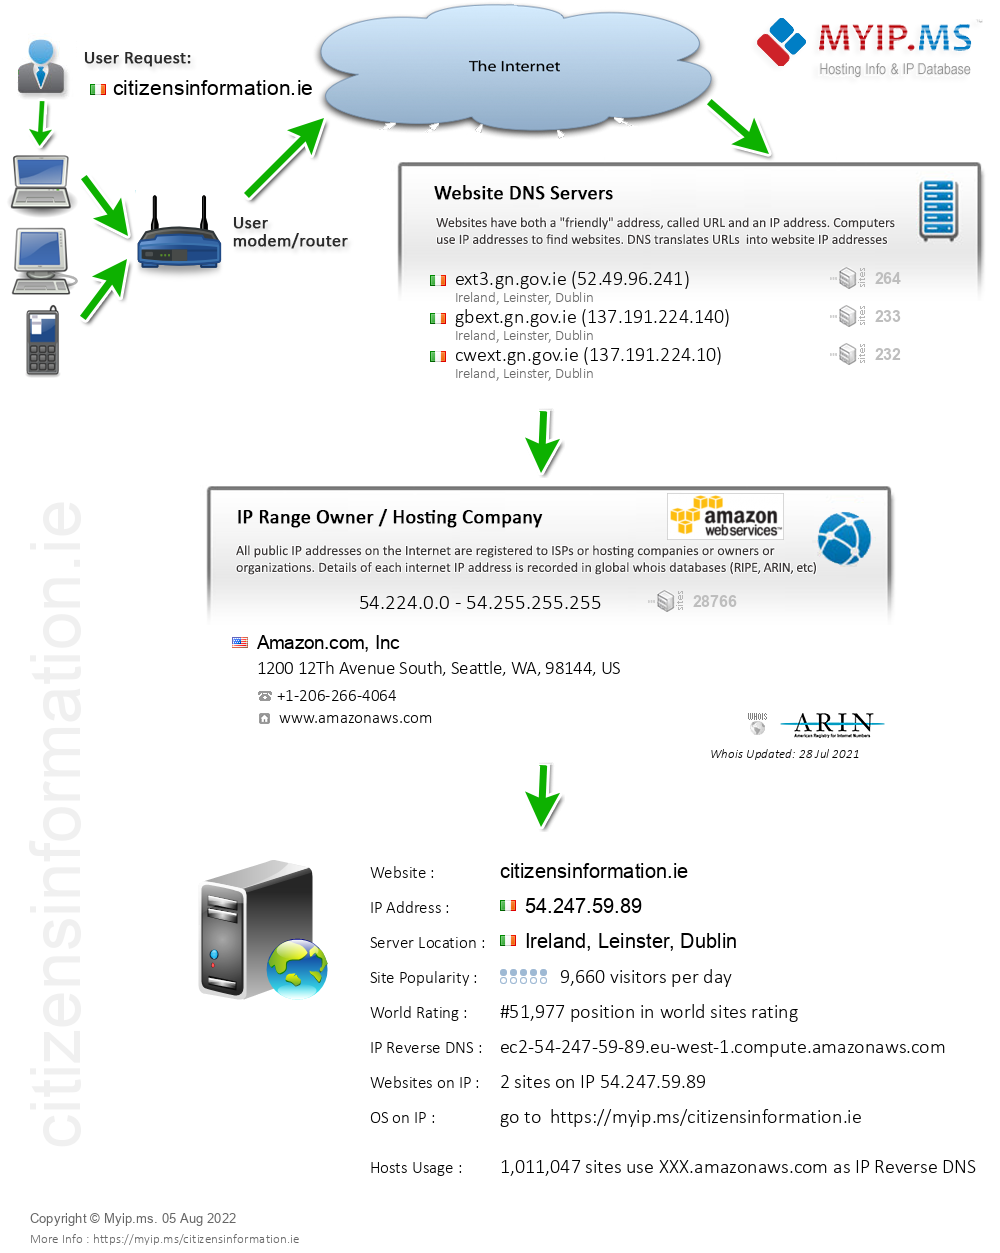 Citizensinformation.ie - Website Hosting Visual IP Diagram